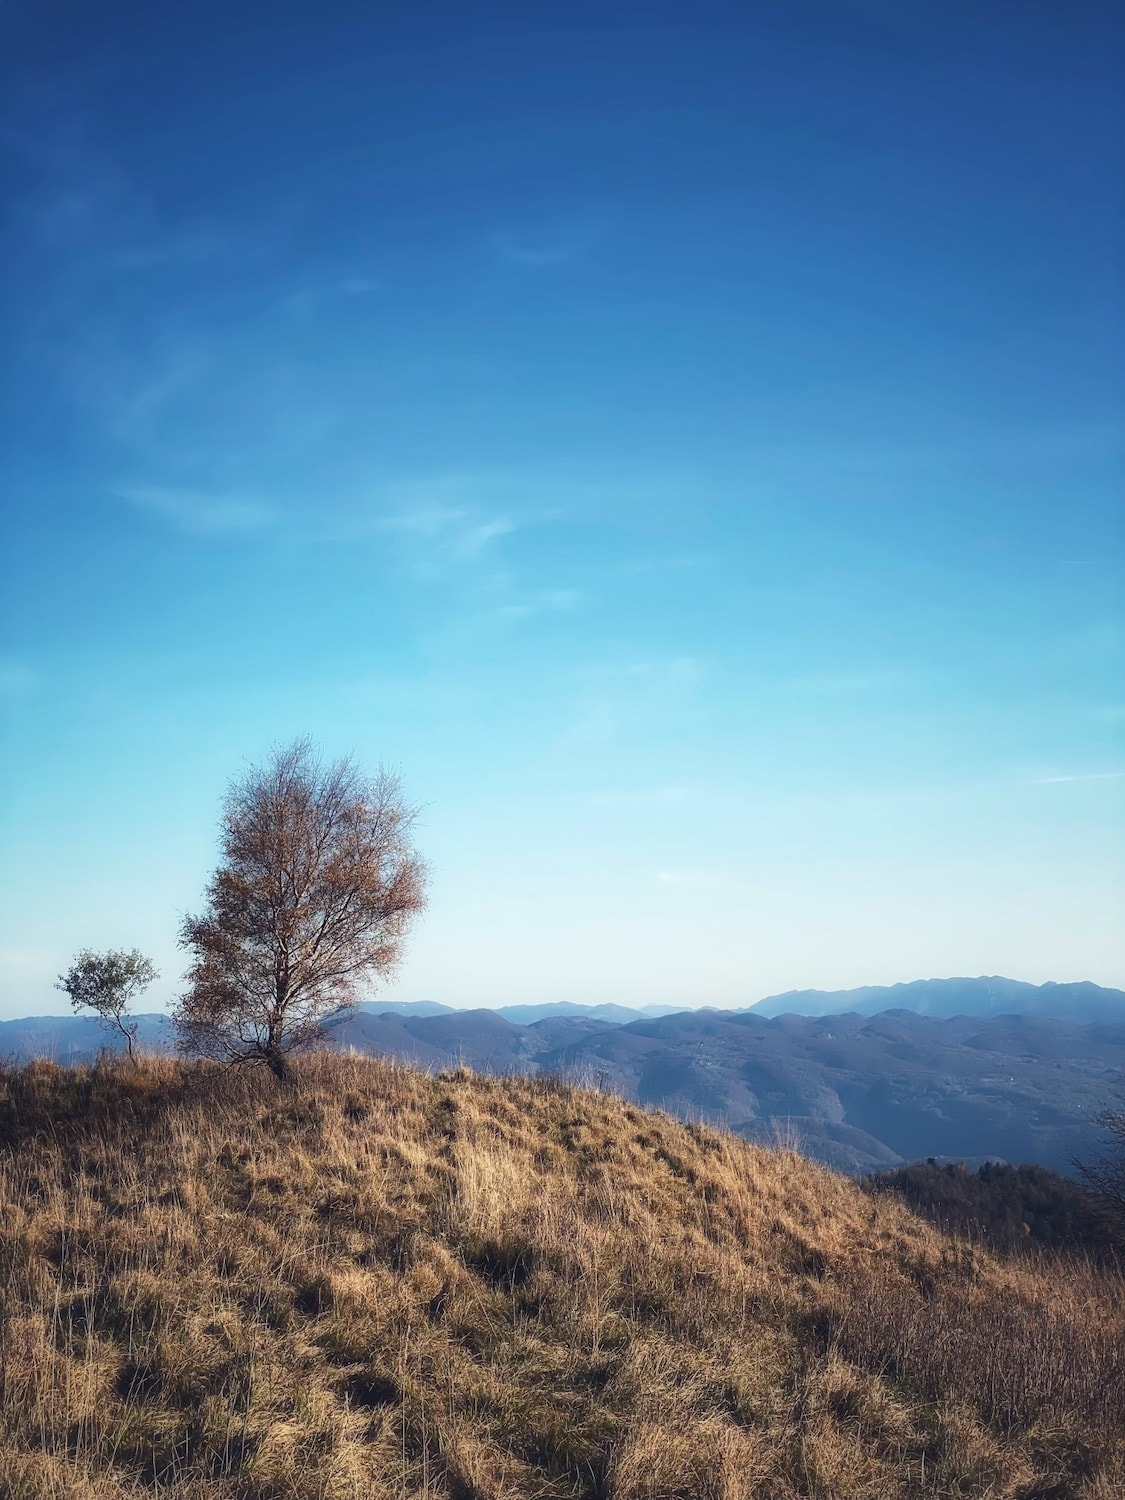 a single tree in the foreground with a clear blue sky and mountains in the background